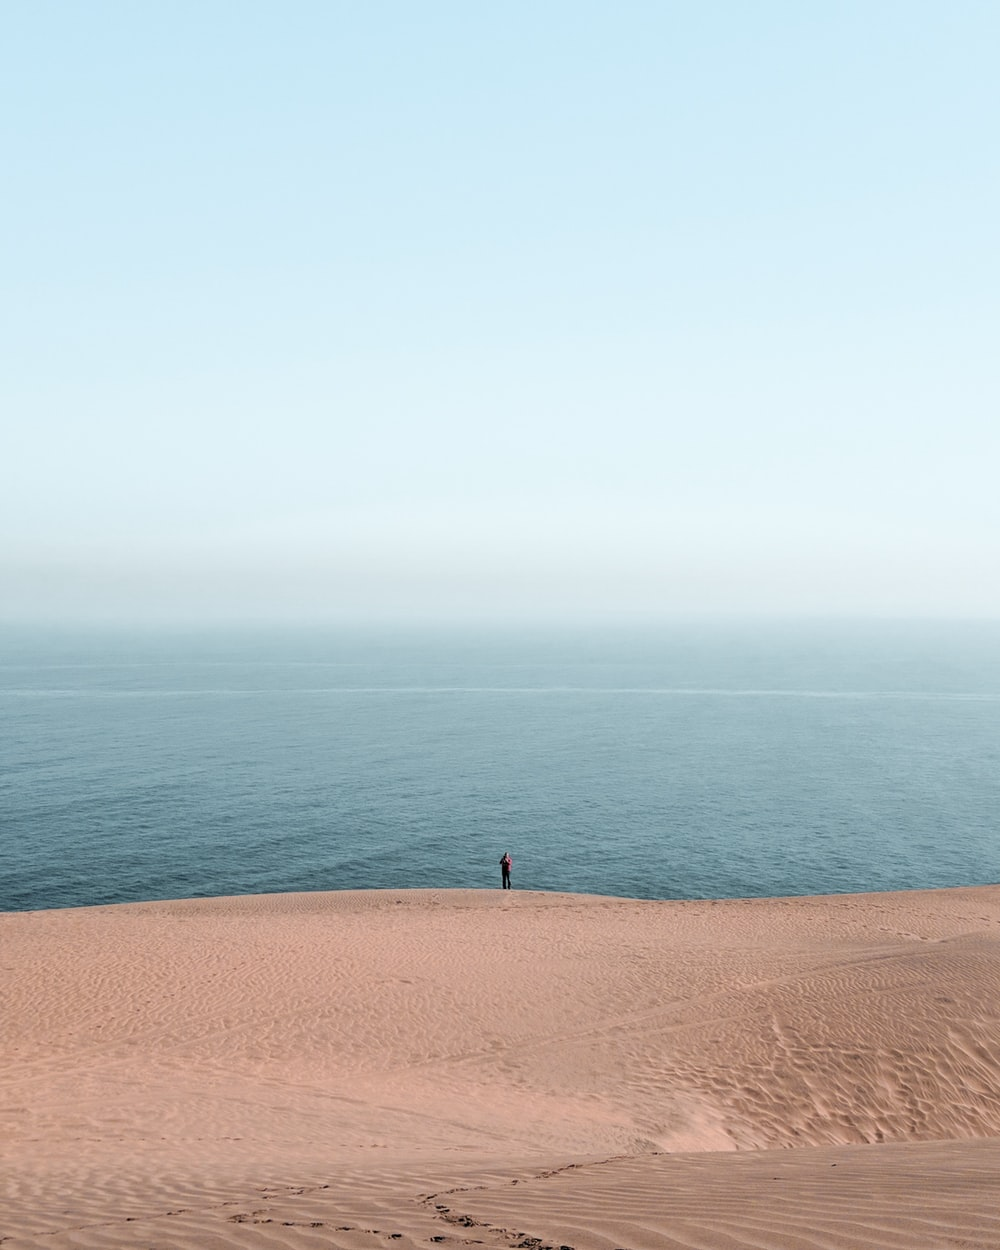 person standing on beach under white sky at daytime